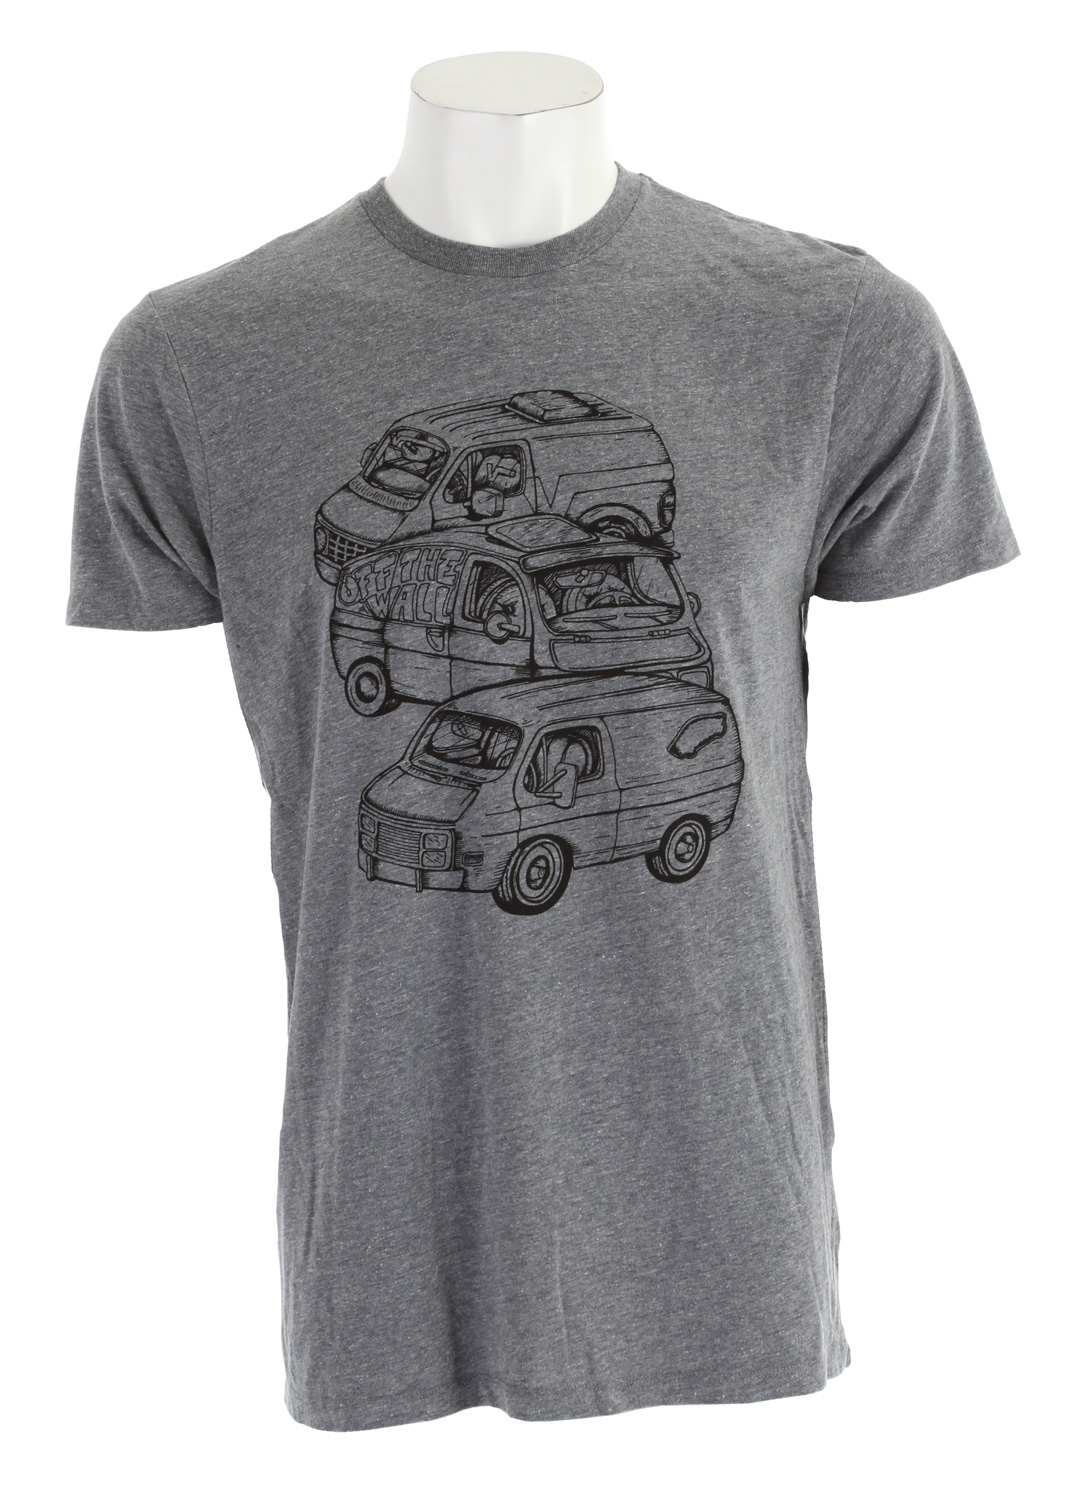 Skateboard Key Features of The Vans Shaggin Wagon T-Shirt: Regular Fit Crew Neck Short Sleeve 50% Cotton 50% Polyester Custom Fit 30/1 combed ringspun cotton crew neck tee shirt Jumbo front chest screen print Clip label on back hem - $21.95